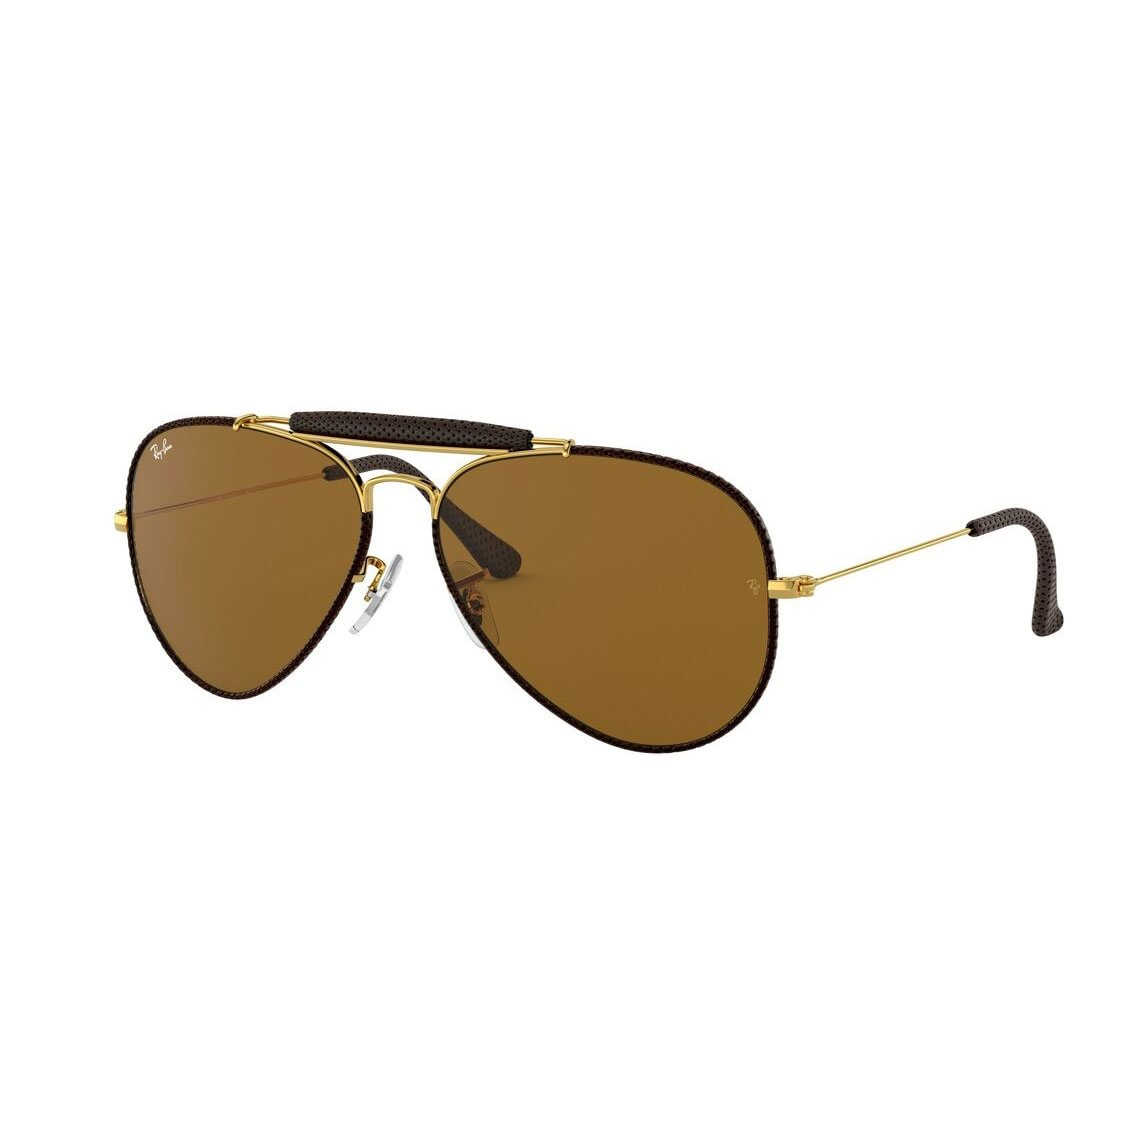 Ray-Ban Outdoorsman craft RB3422Q 9041 58